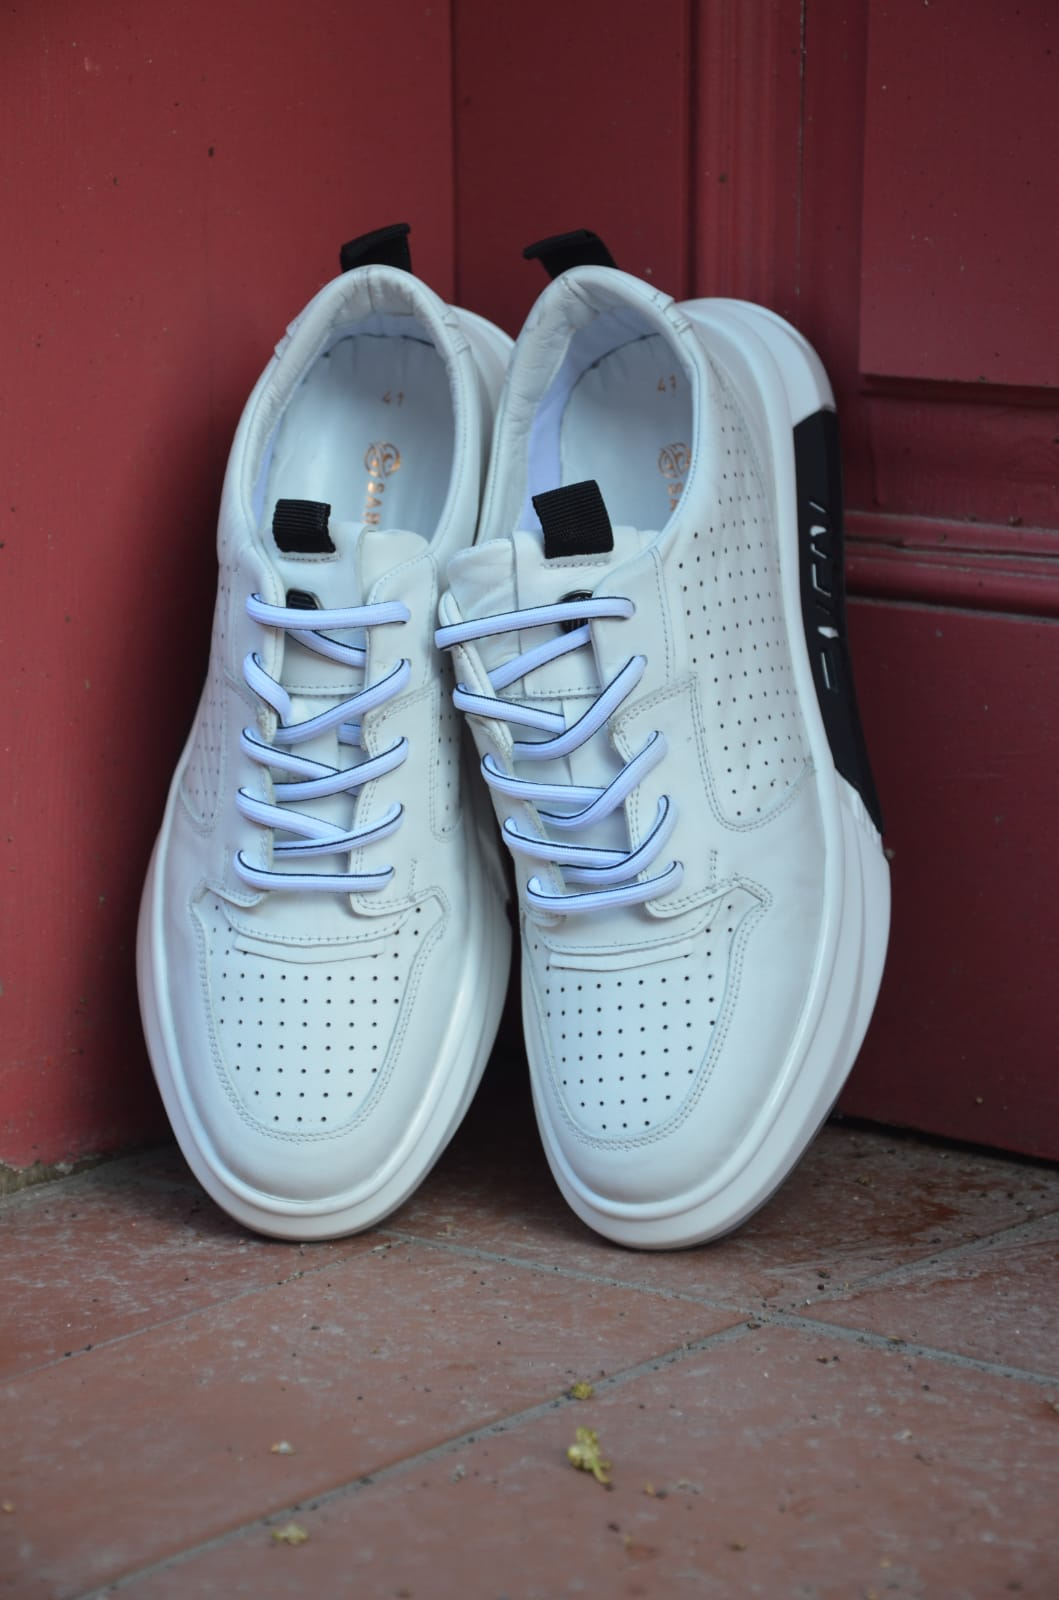 Aysoti Durham White Mid-Top Sneakers